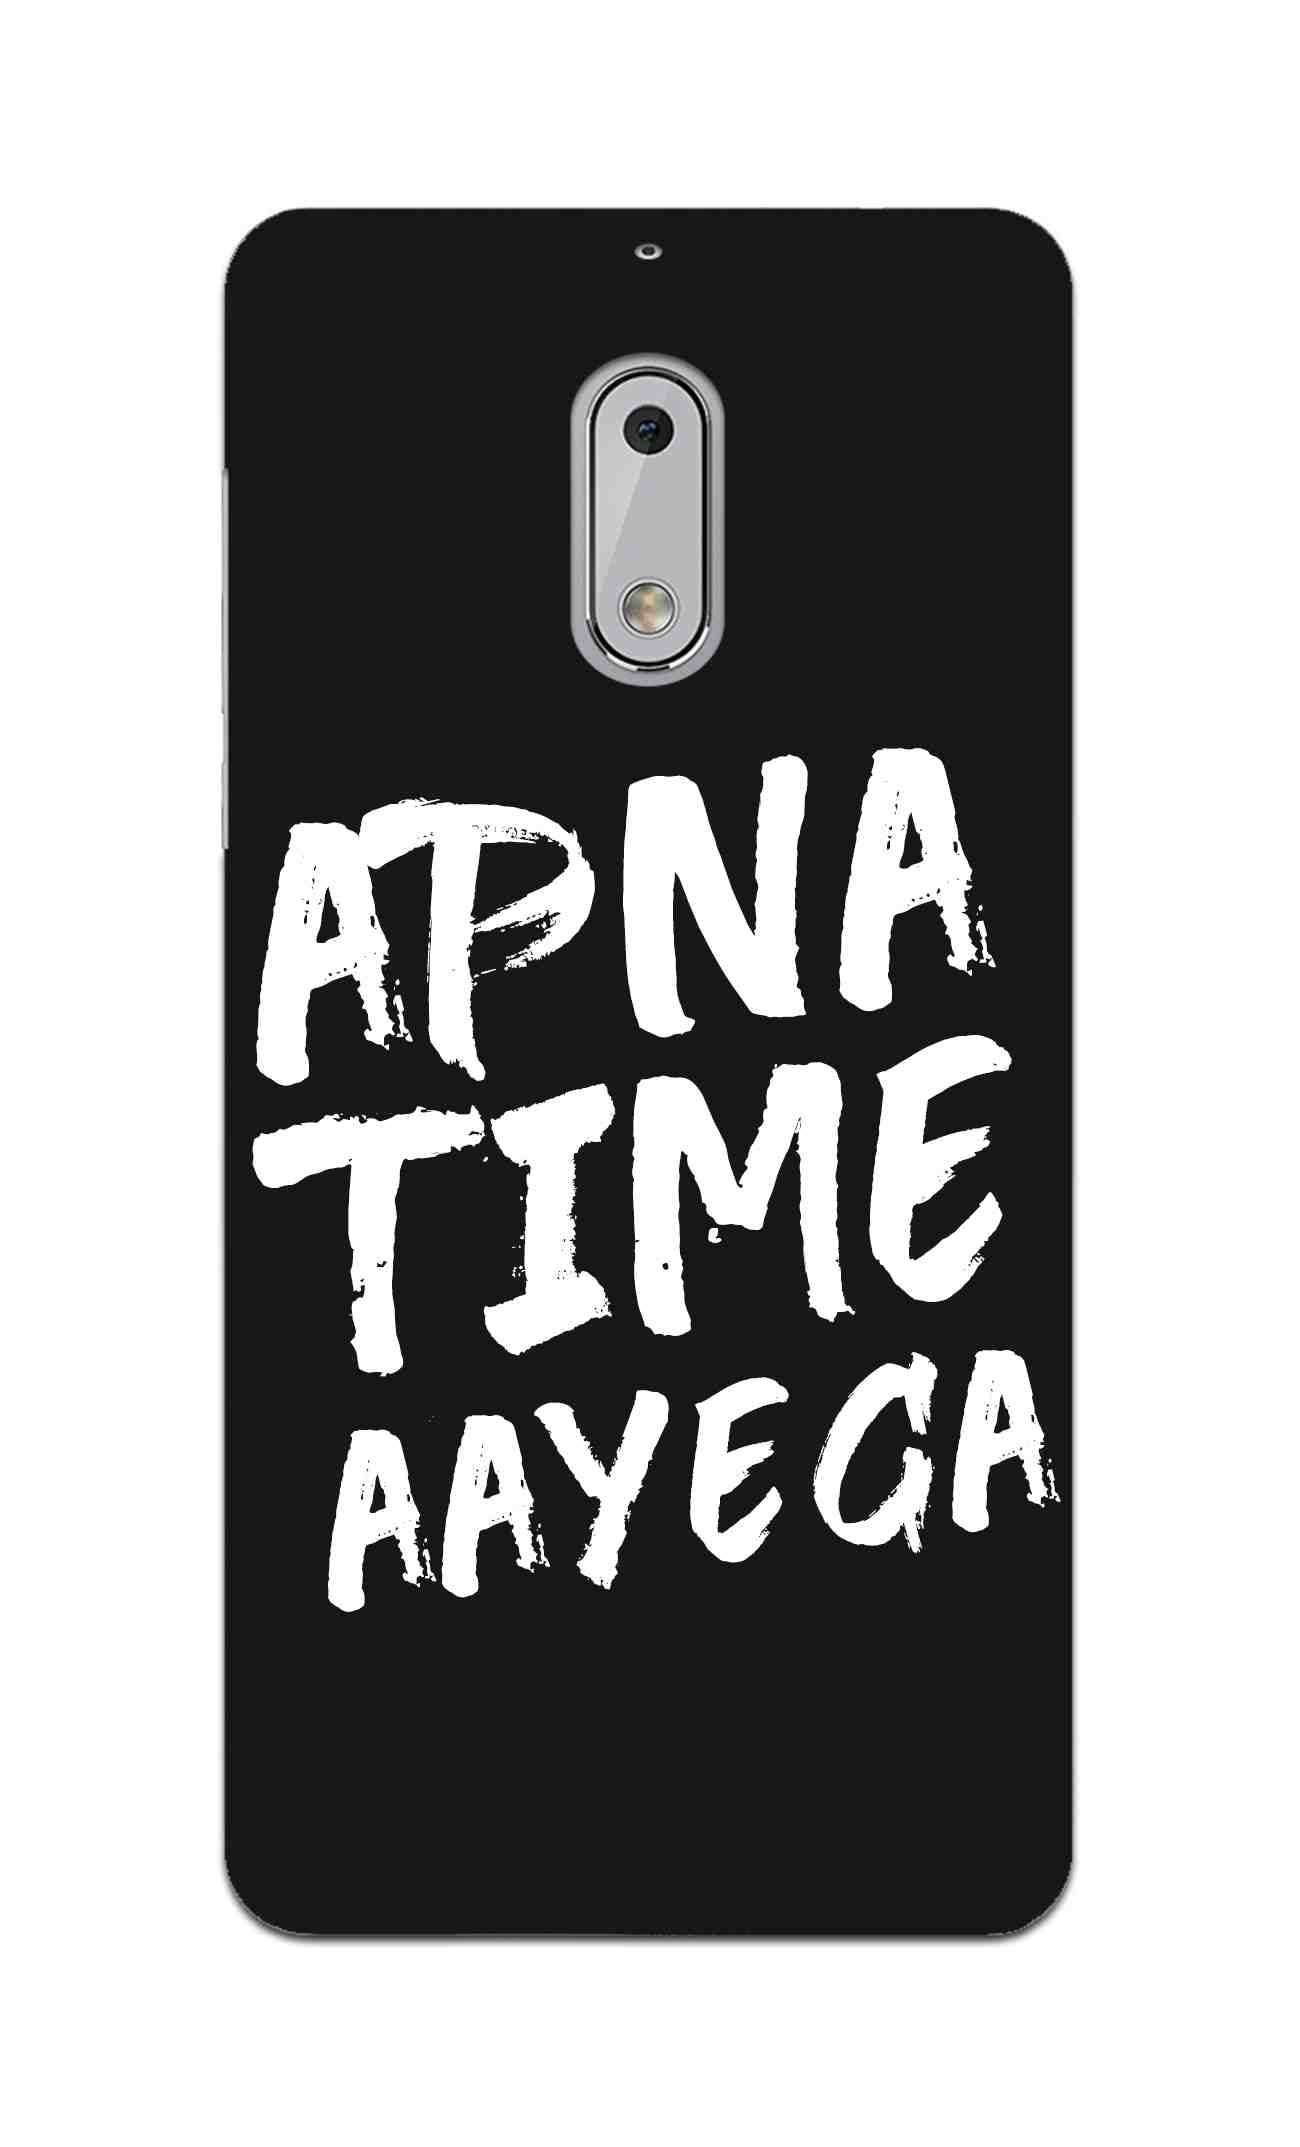 Apna Time Ayega Movie Song Nokia 6 Mobile Cover Case